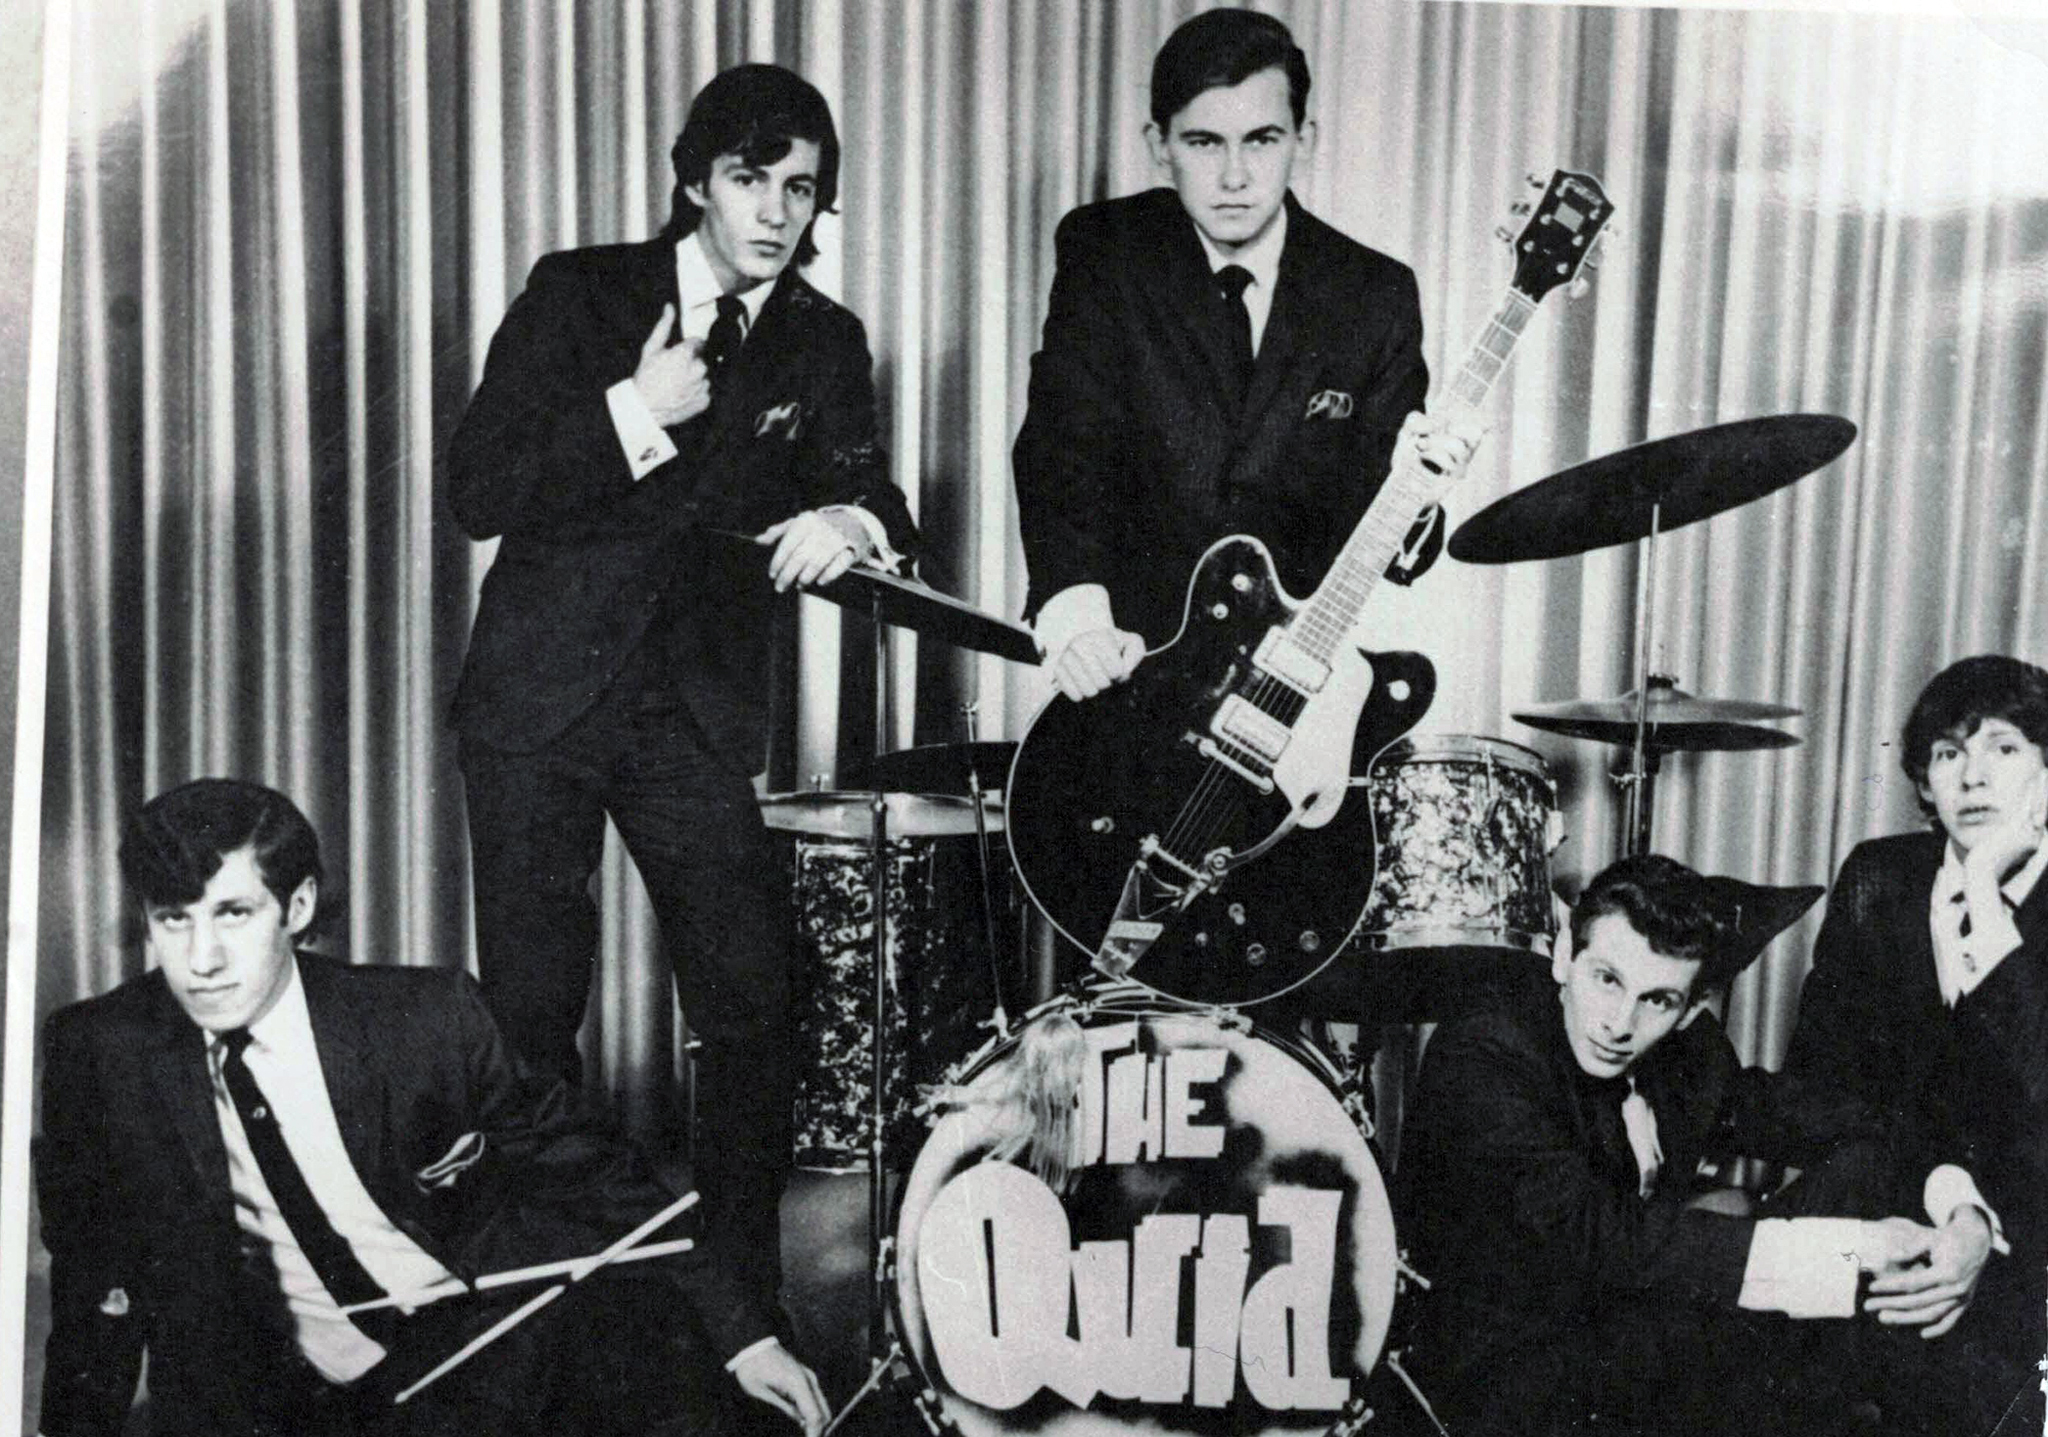 The Quid circa 1966 (from left): Lenny Fidkalo, Ron Rene, Billy Pavlik, Colin Palmer and Morley Nickles.